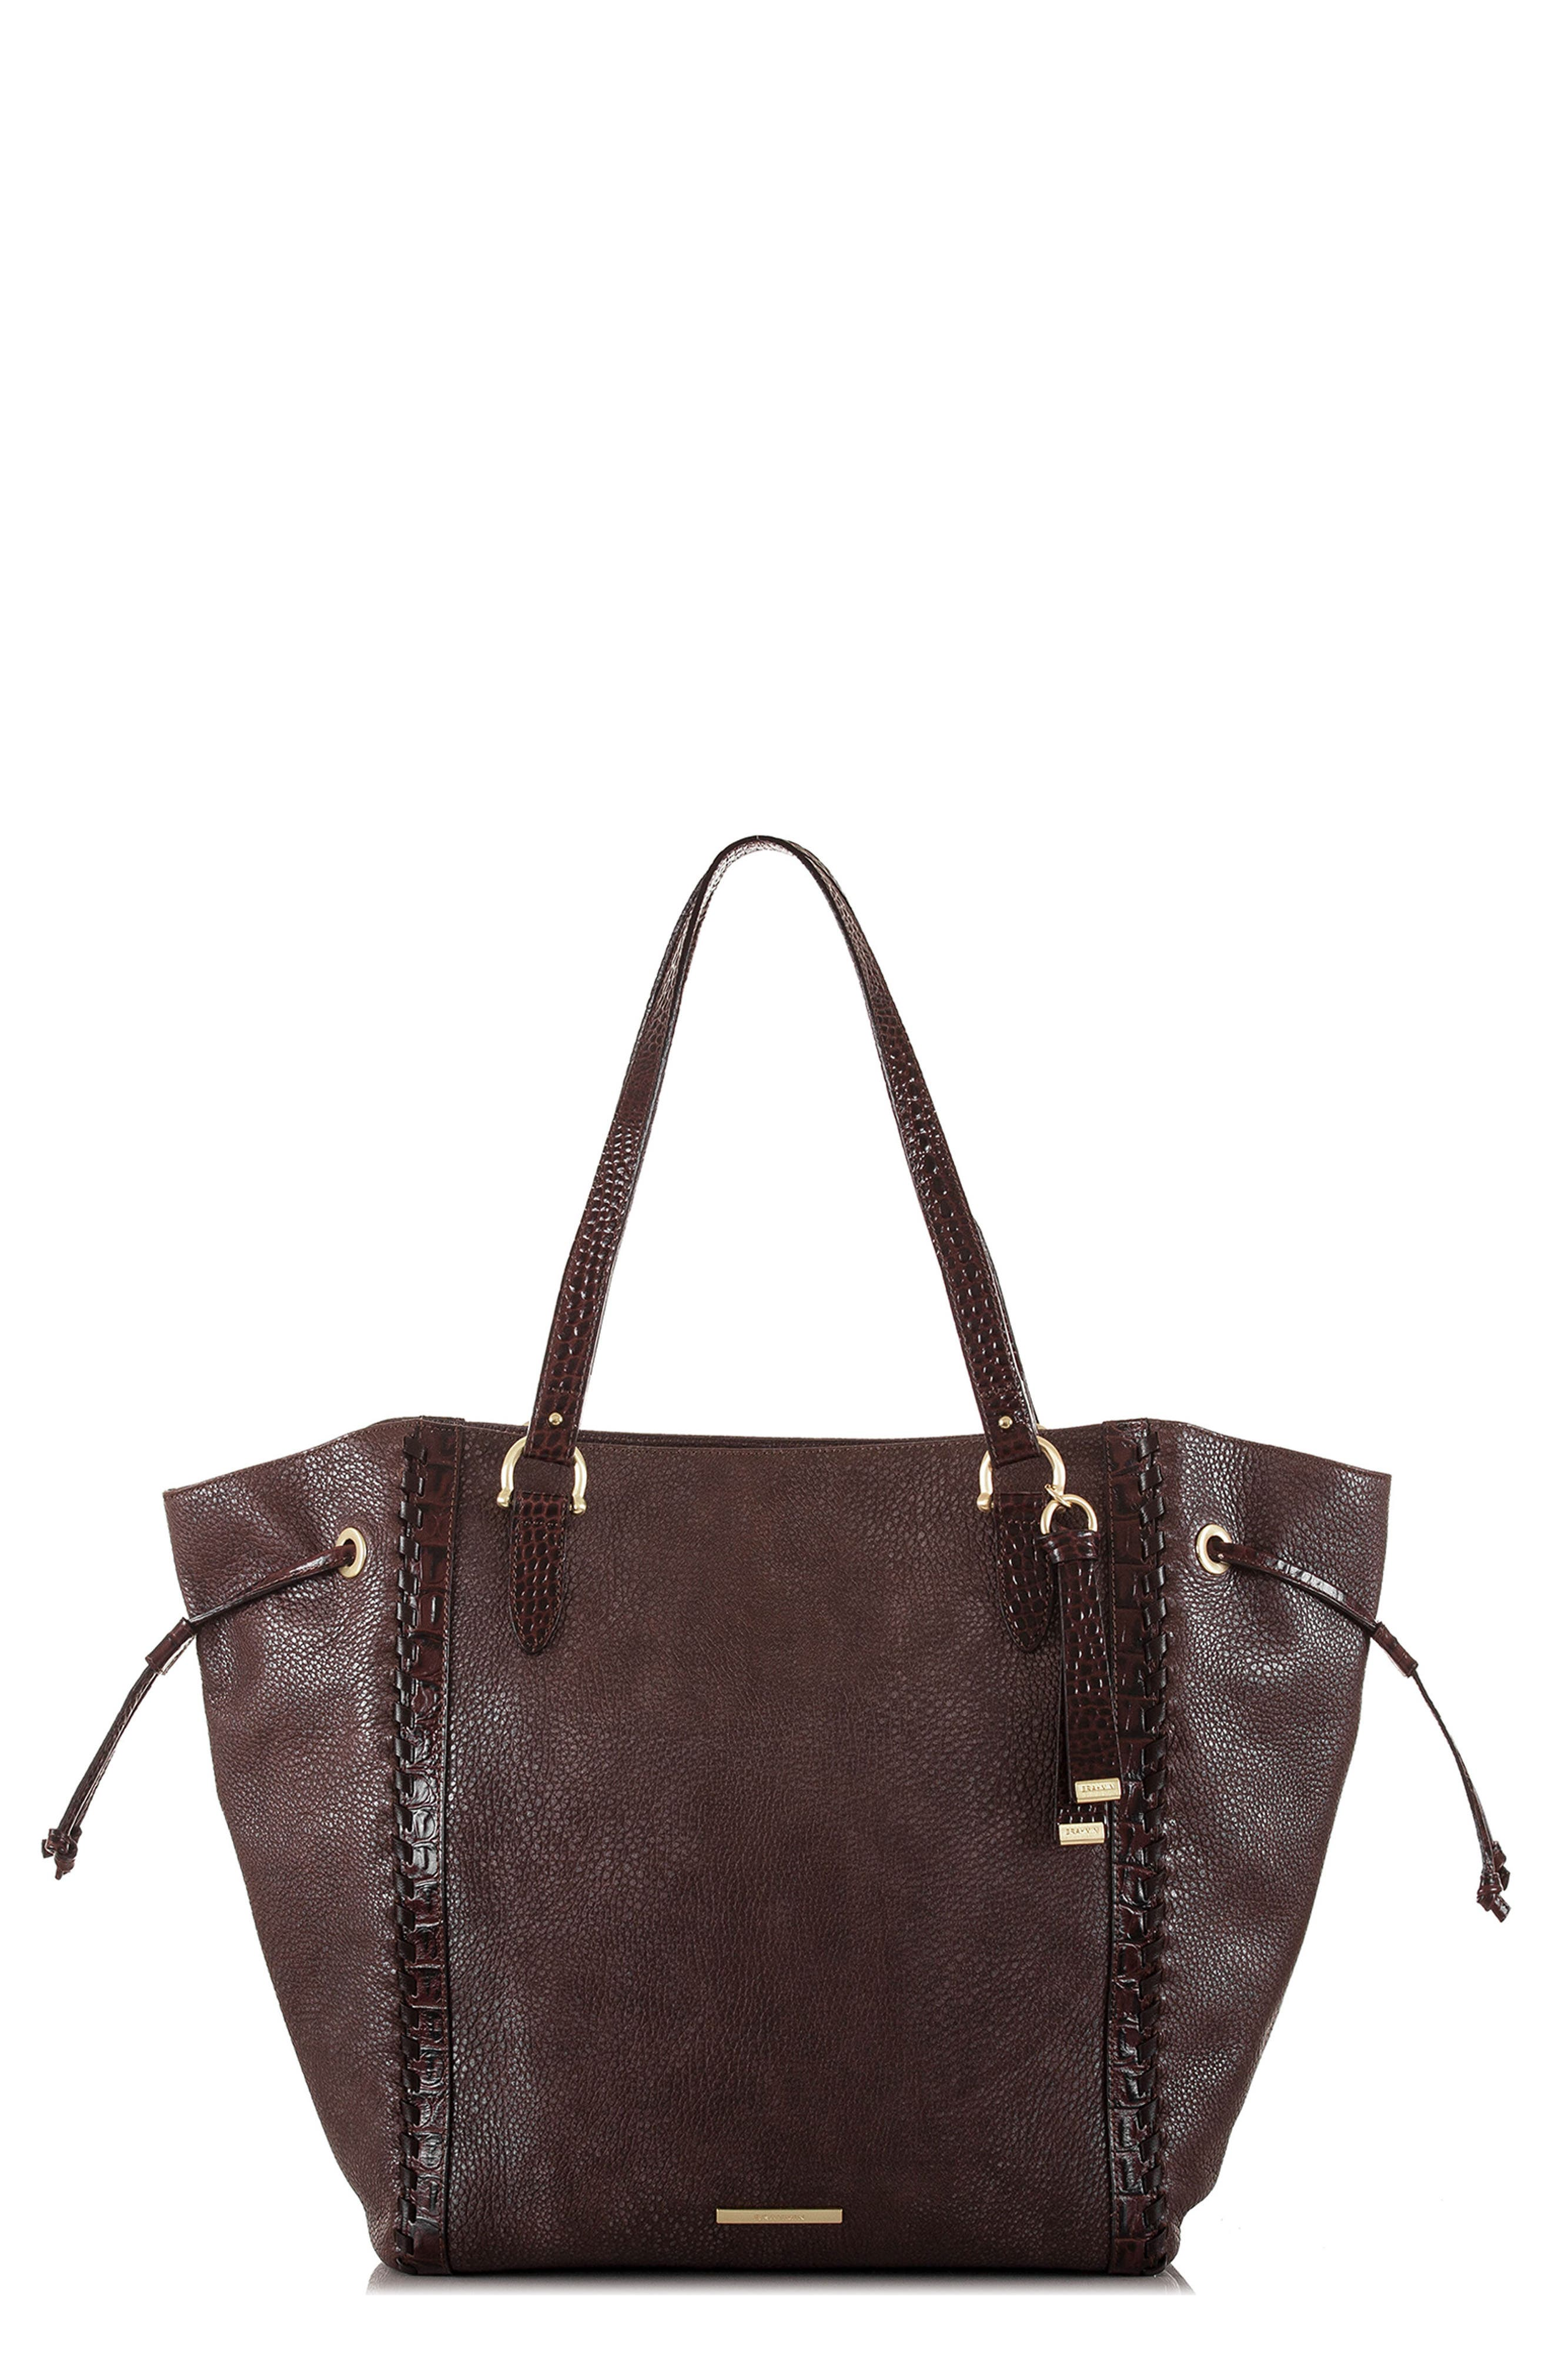 Southcoast Cheyenne Leather Tote,                         Main,                         color, 200